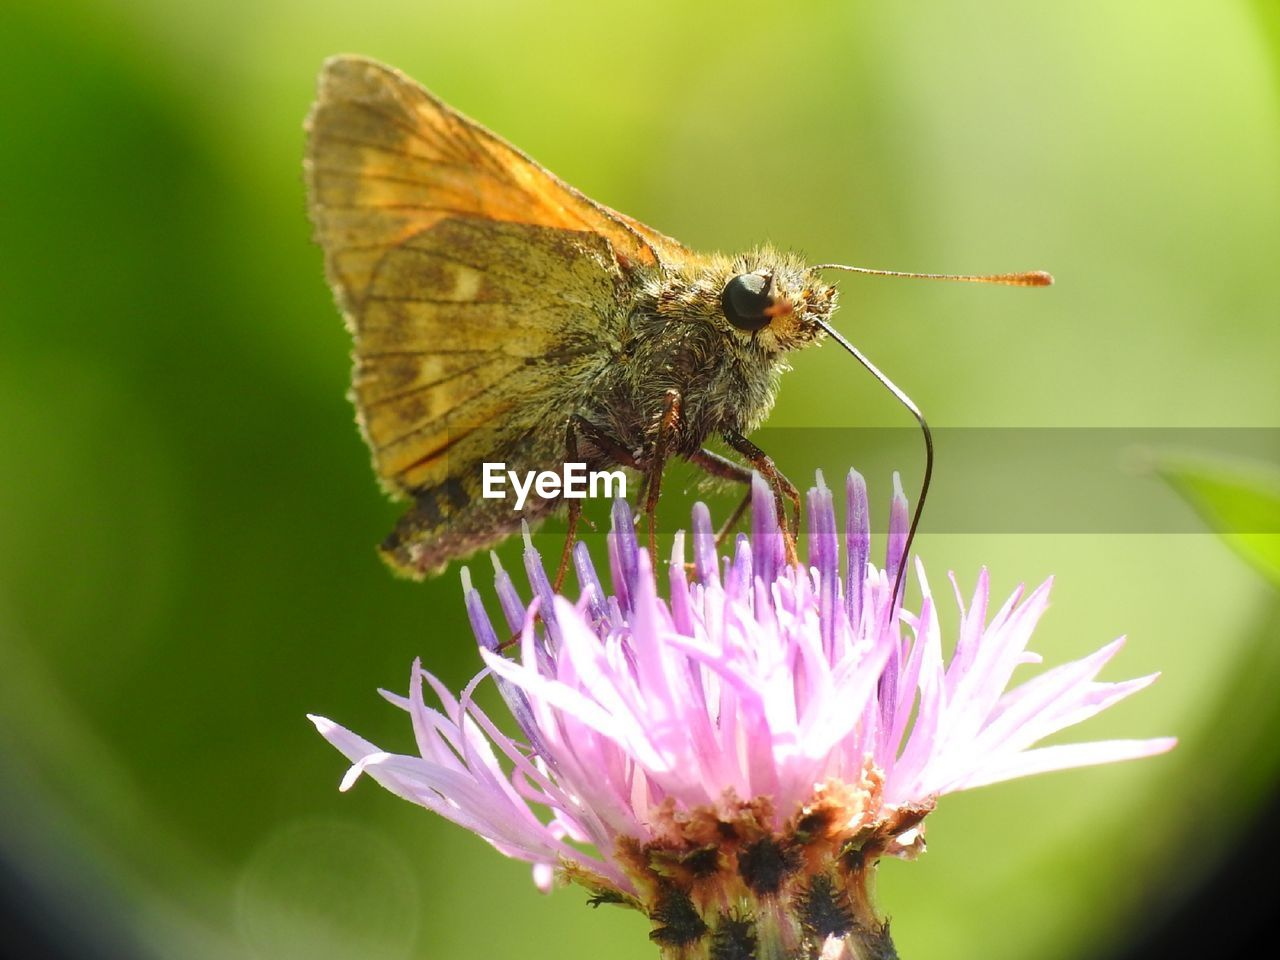 flower, invertebrate, flowering plant, insect, one animal, animal themes, animal, animals in the wild, animal wildlife, vulnerability, fragility, beauty in nature, plant, close-up, petal, flower head, animal wing, freshness, pollination, growth, no people, butterfly - insect, pink color, butterfly